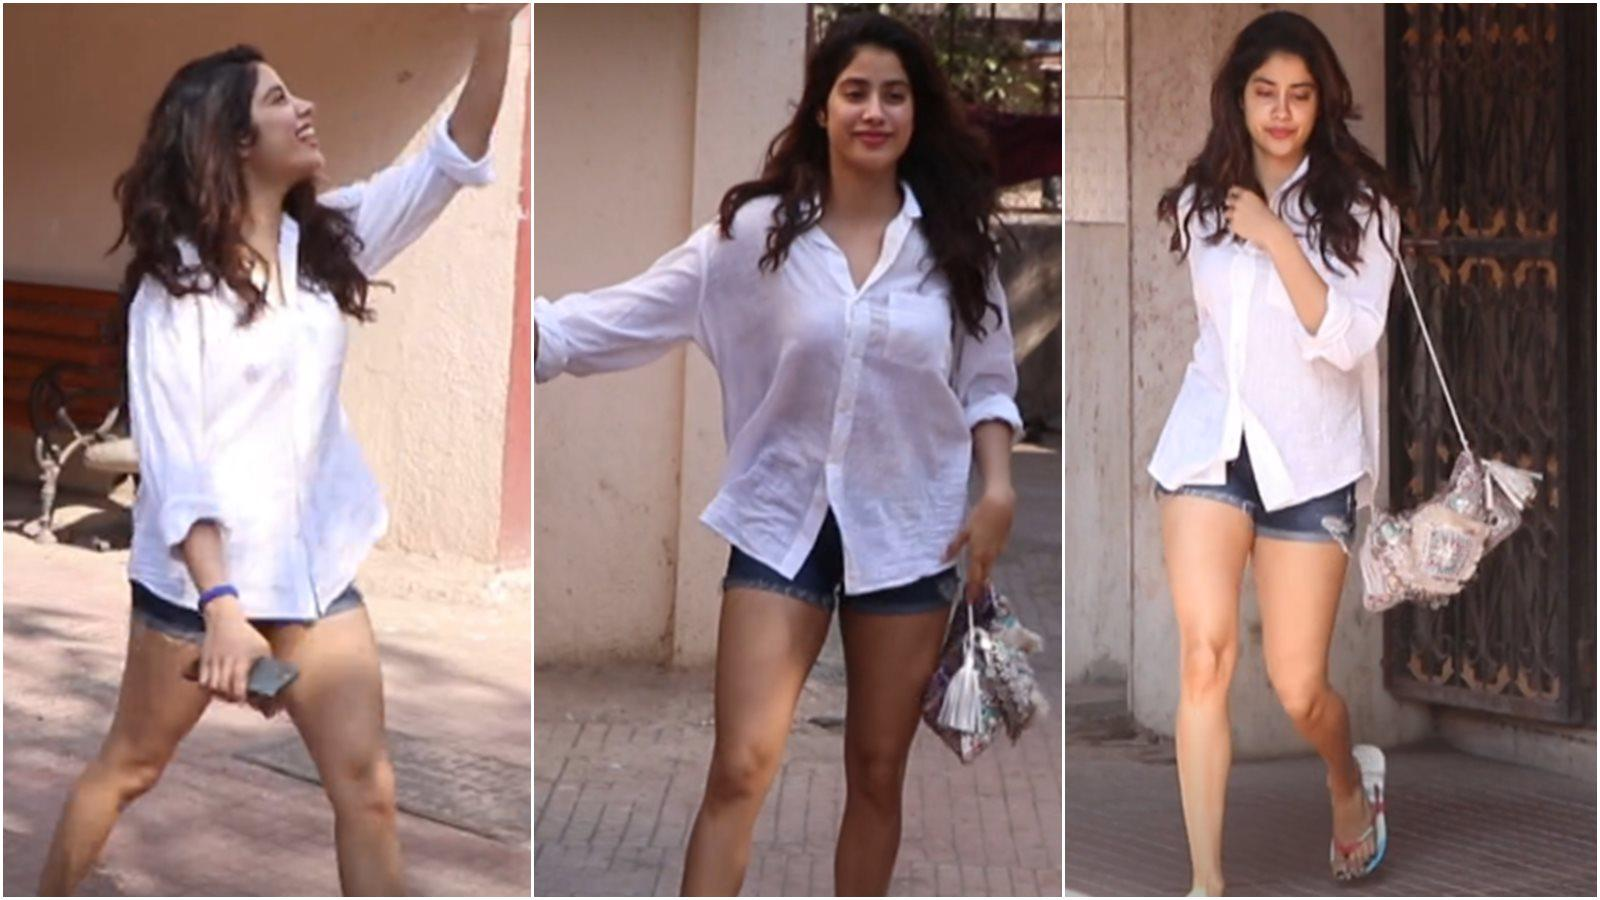 janhvi-kapoor-sports-girl-next-door-look-makes-heads-turn-in-white-shirt-and-shorts